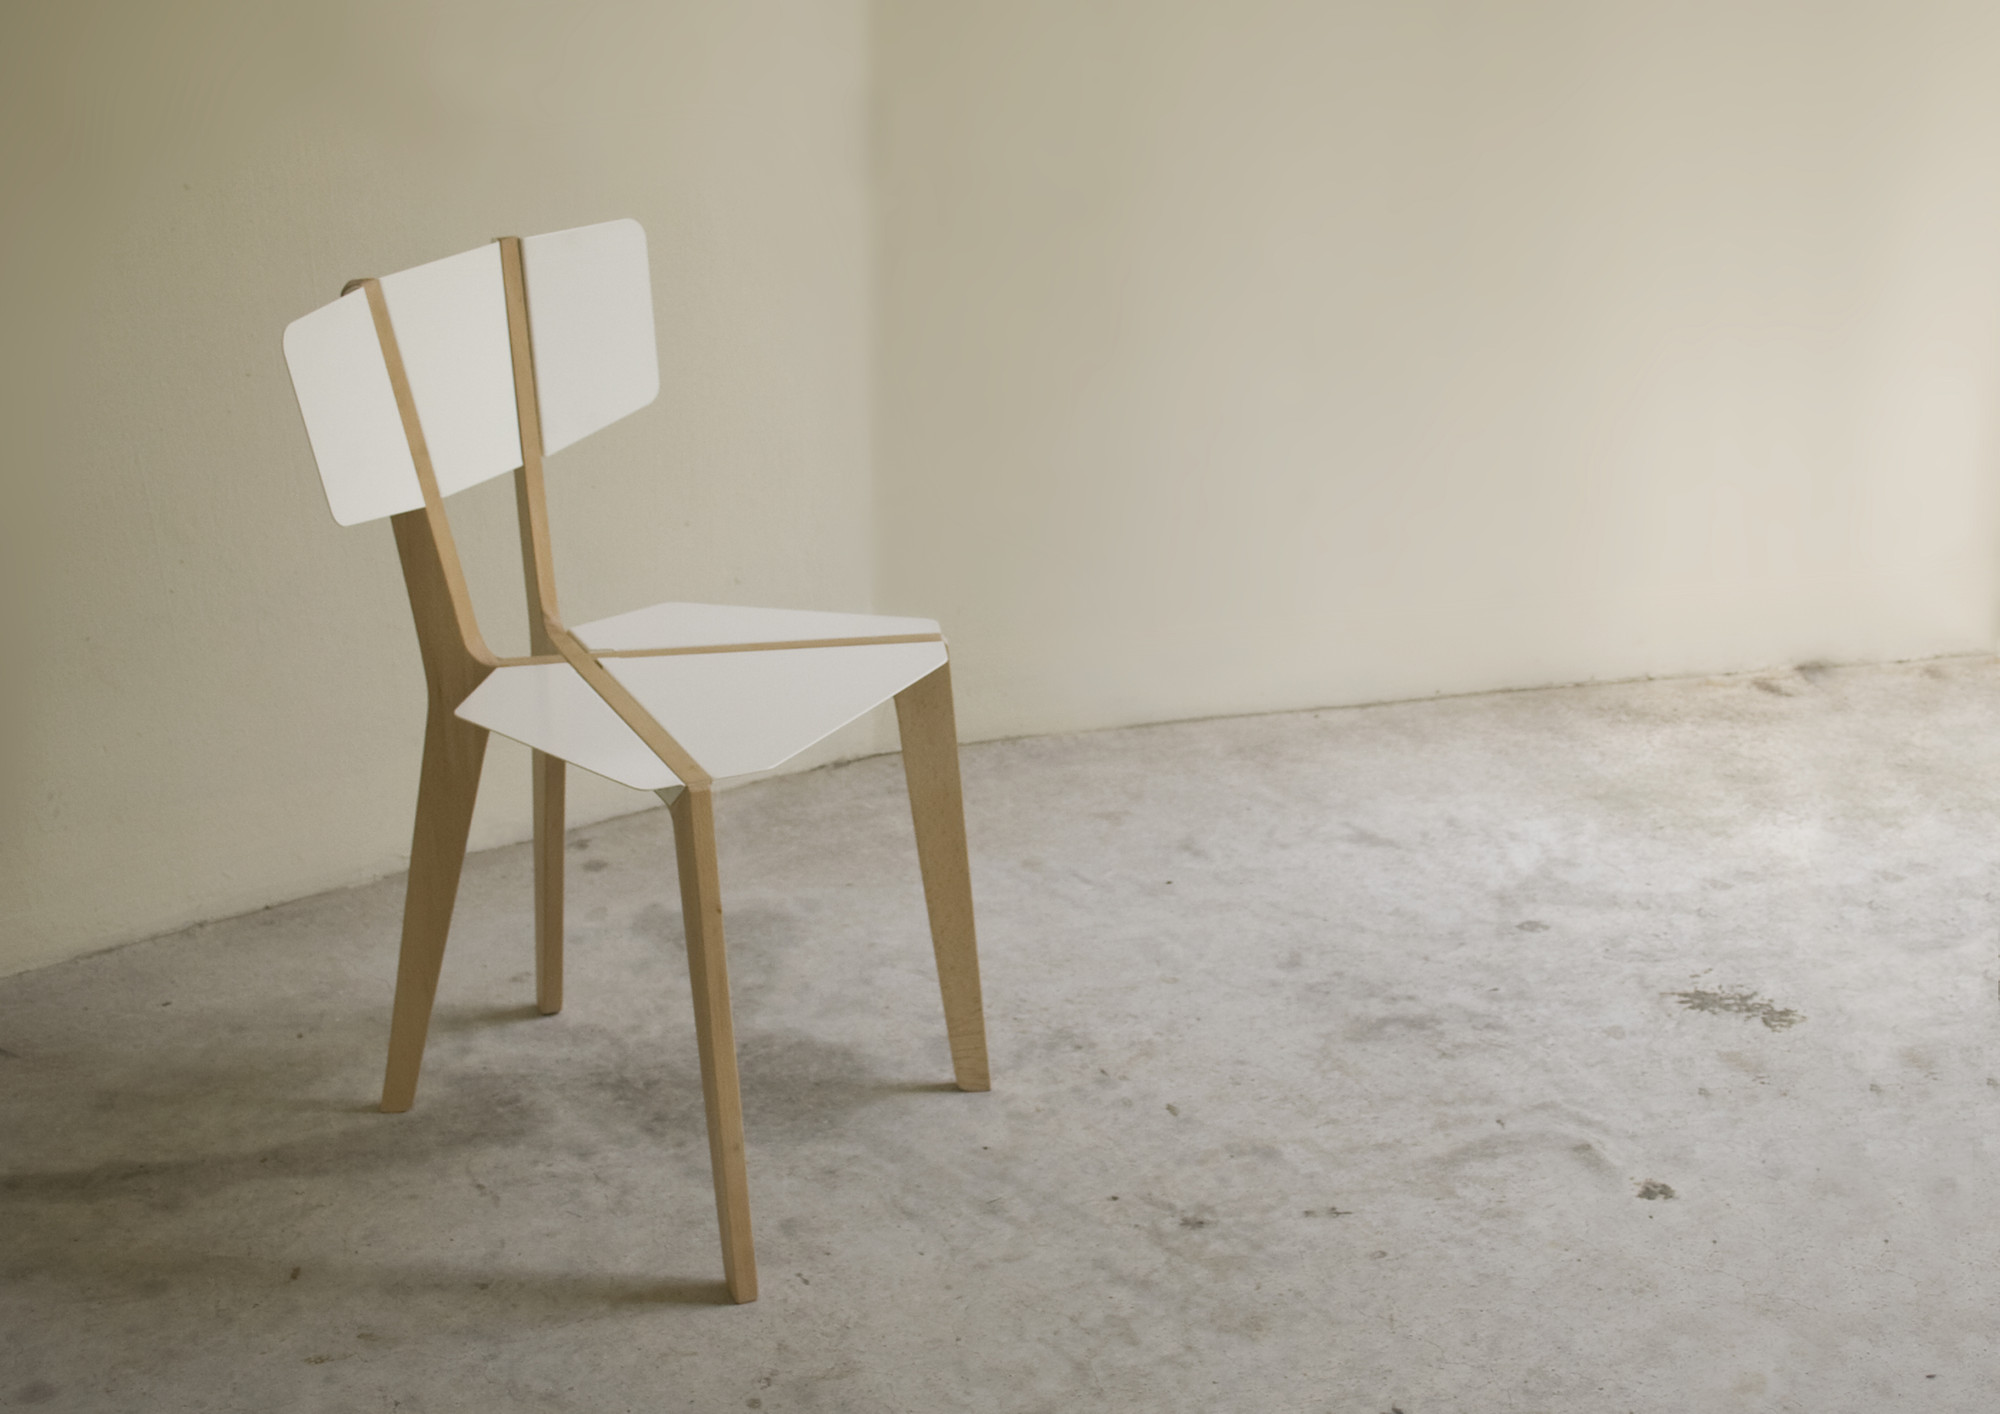 Silla Naked / Outofstock, Courtesy of outofstock